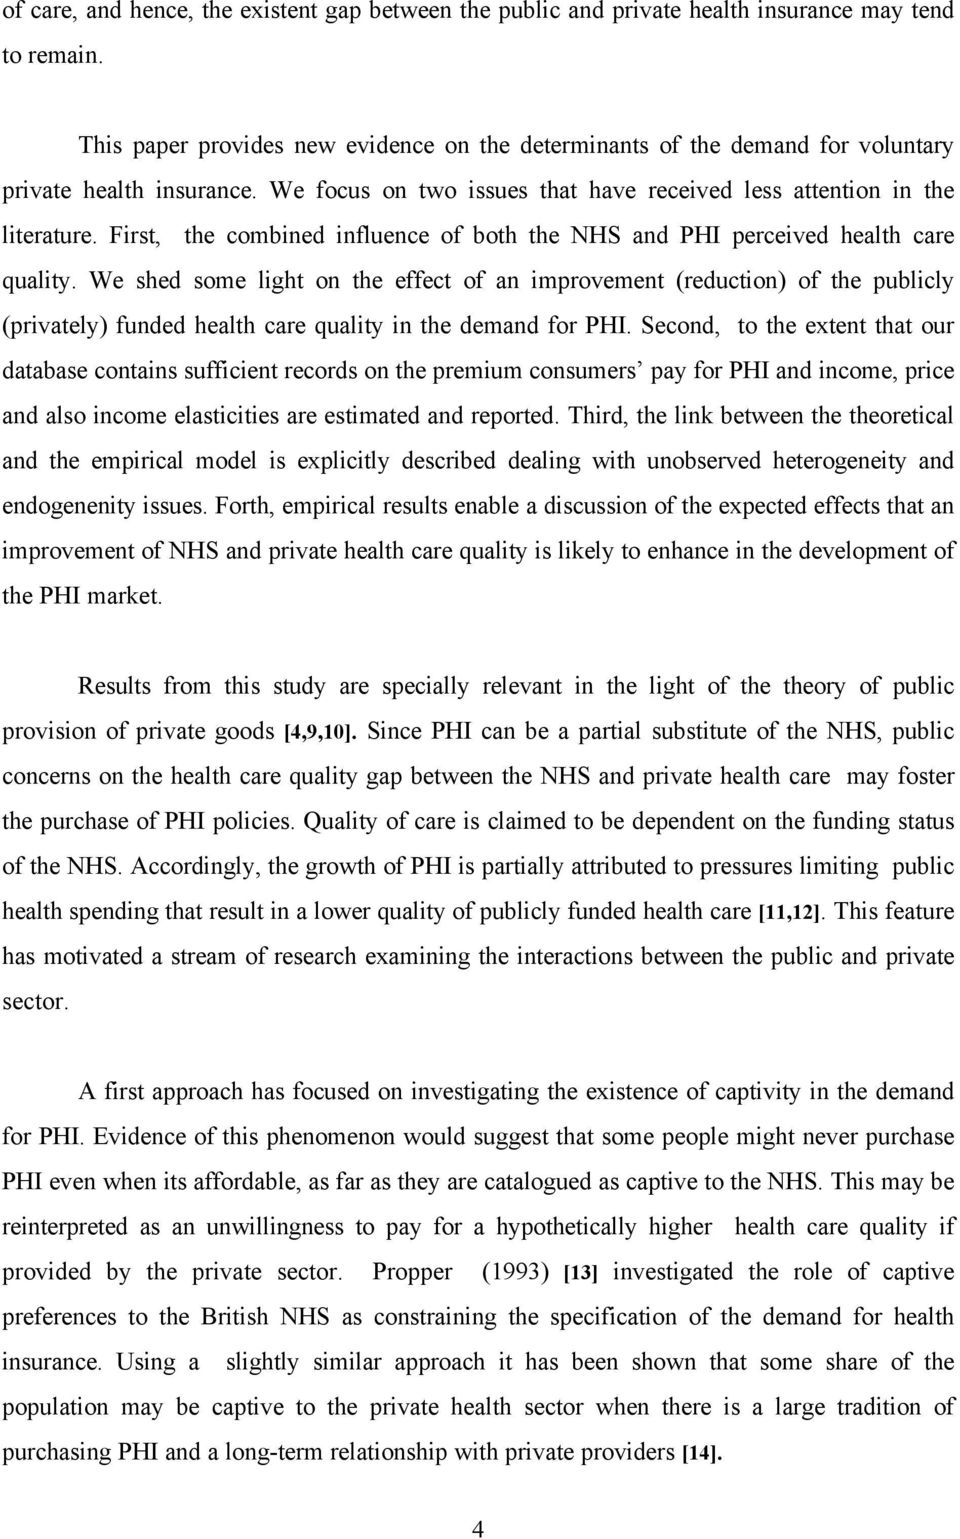 First, the combined influence of both the NHS and PHI perceived health care quality.